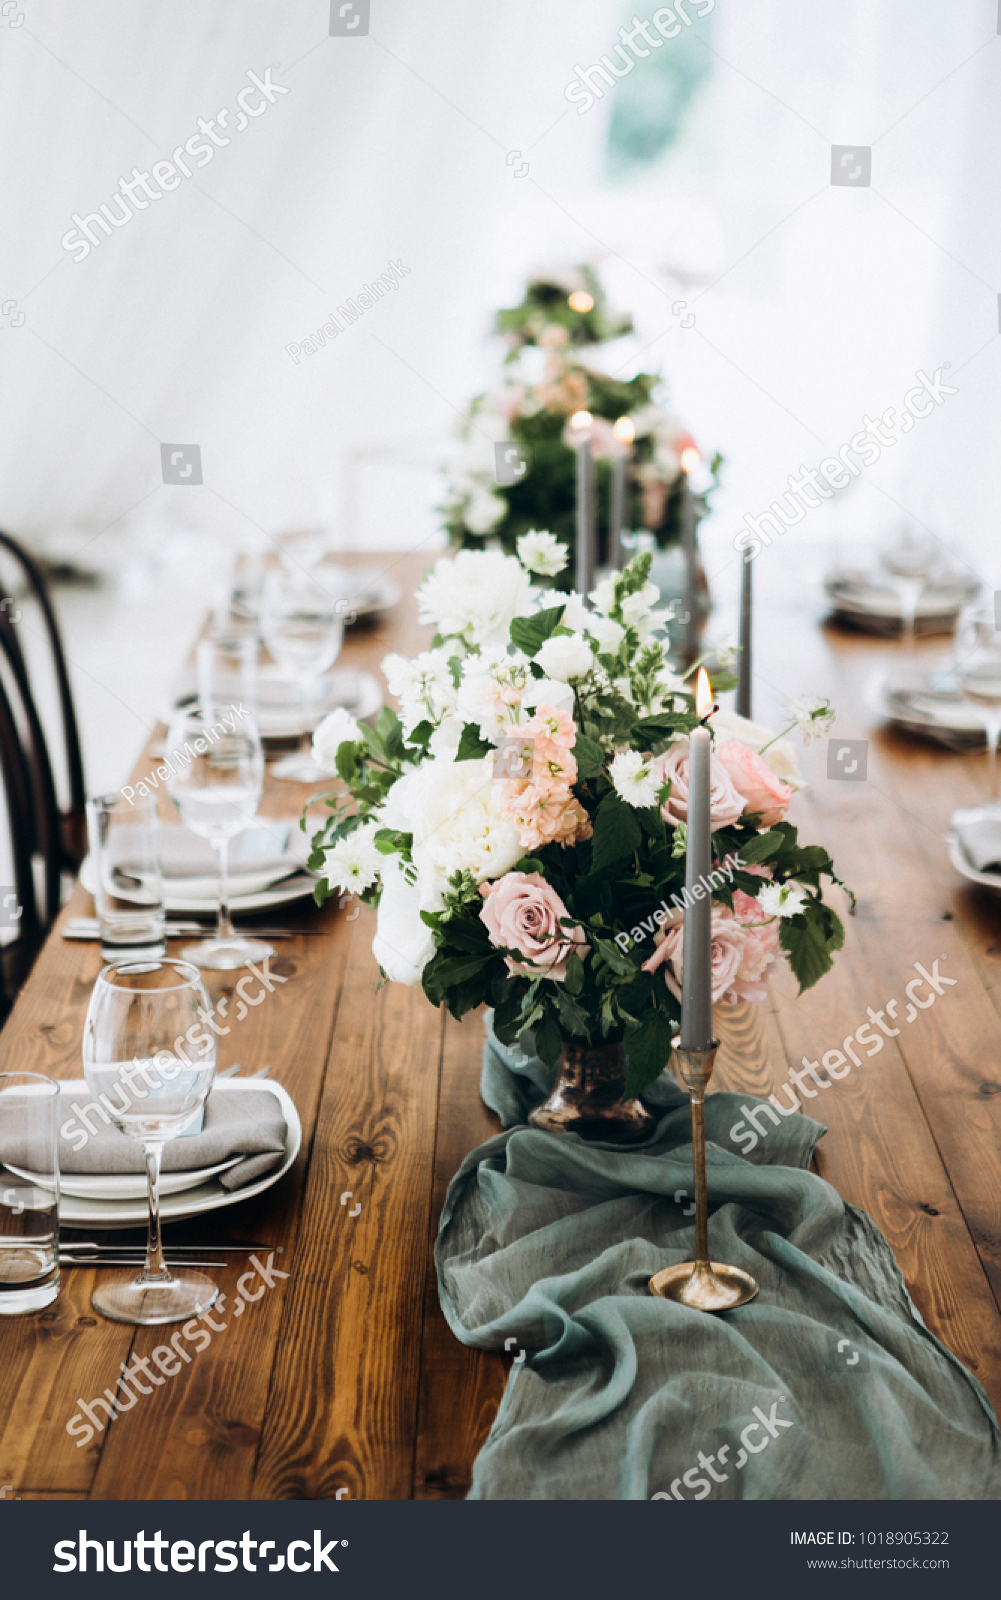 Wooden Wedding Table Decoration Flowers Candles Stock Photo Edit Now 1018905322